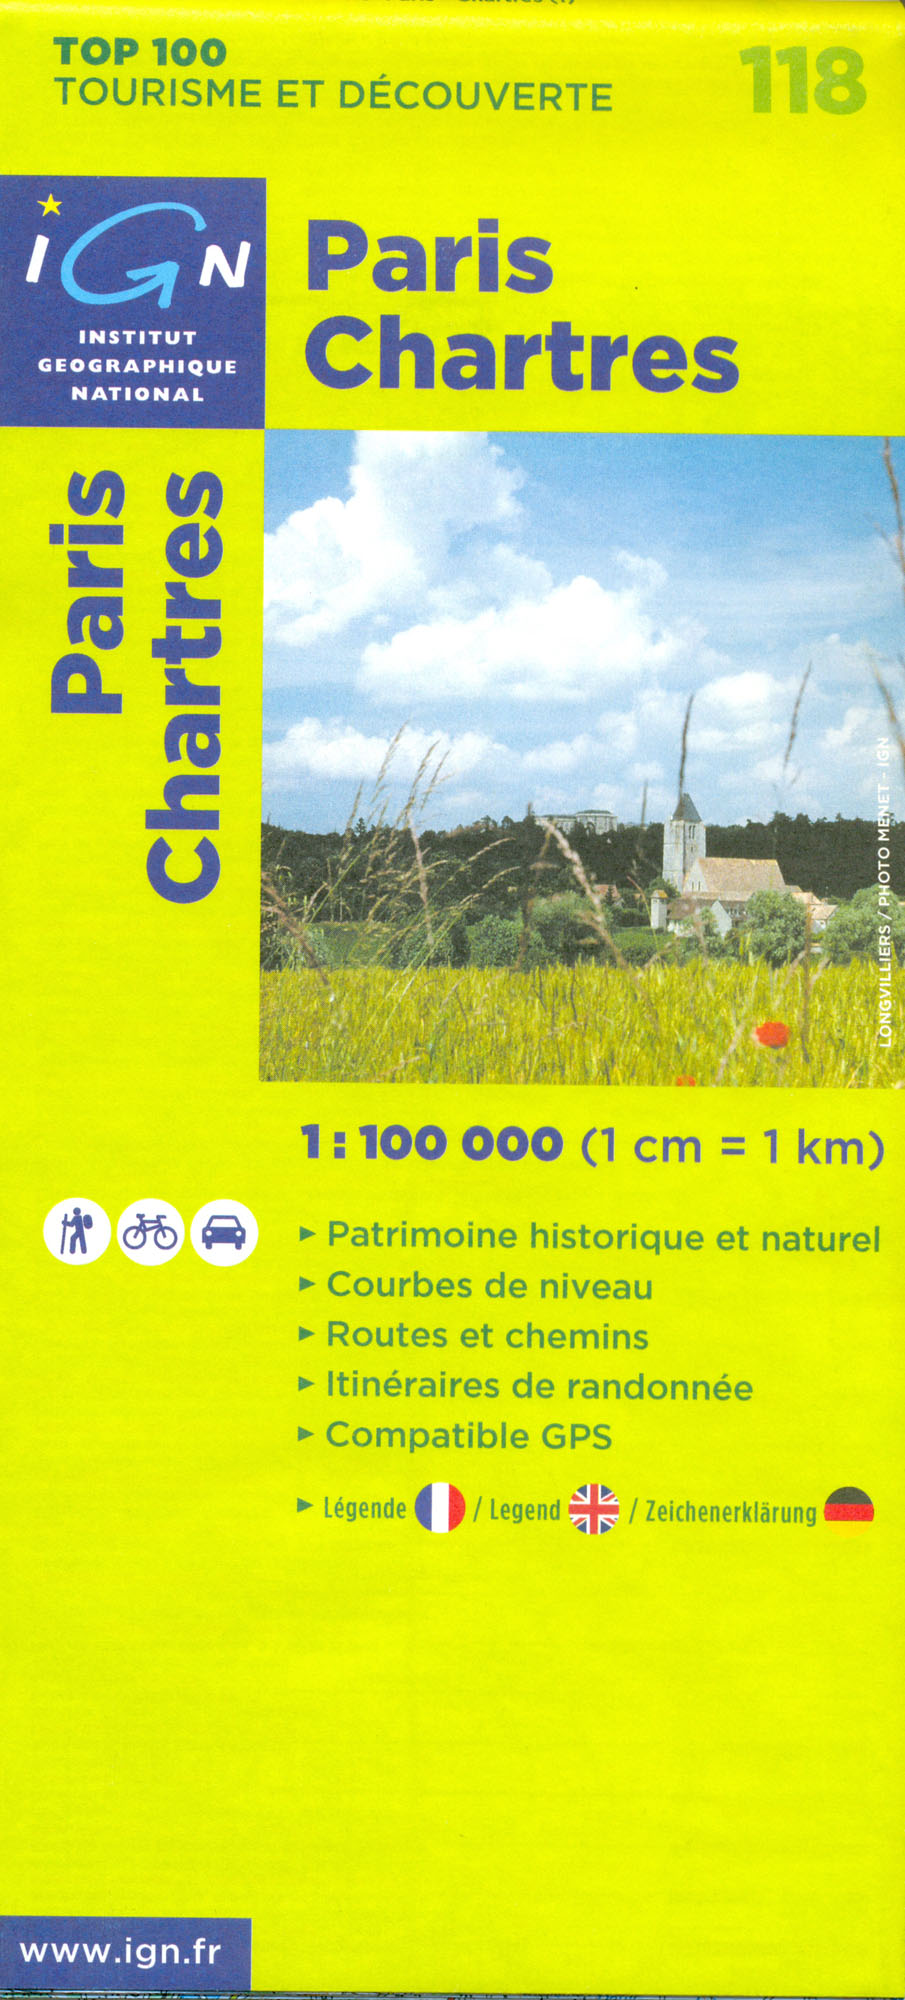 IGN 118 Paris, Chartres 1:100t mapa IGN